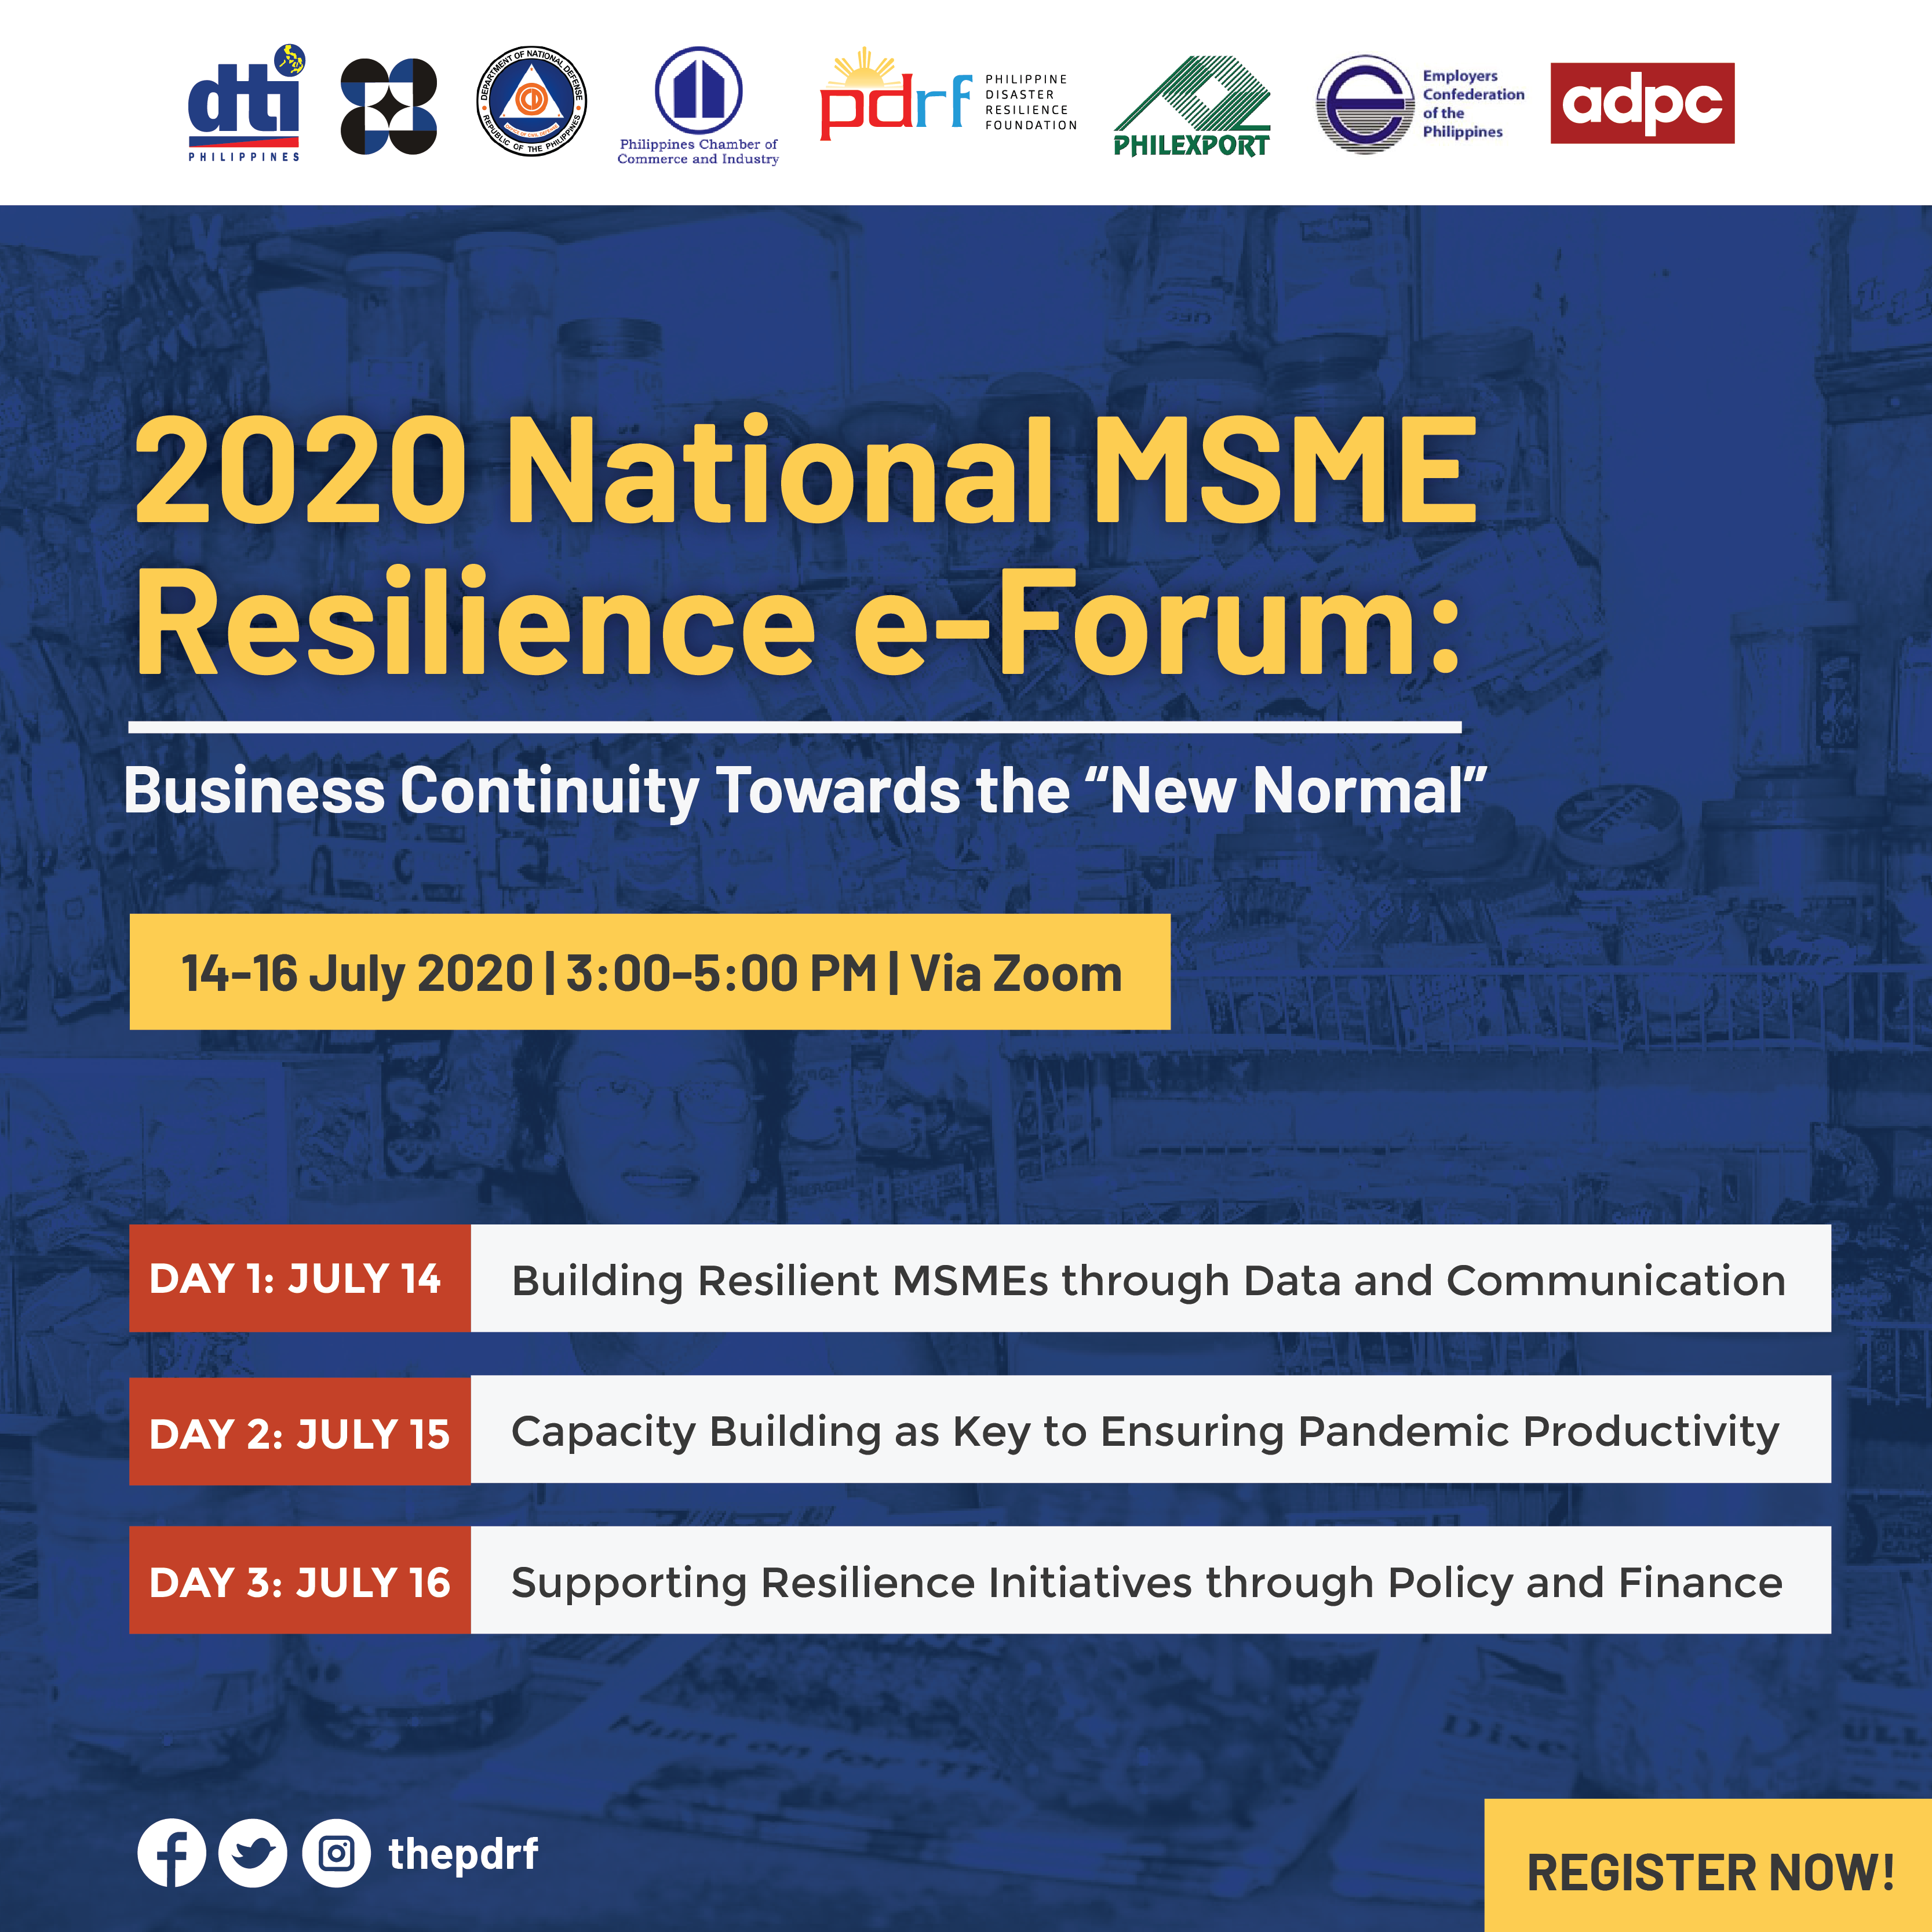 Online programs, recovery tools for pandemic-affected enterprises highlighted during MSME Week